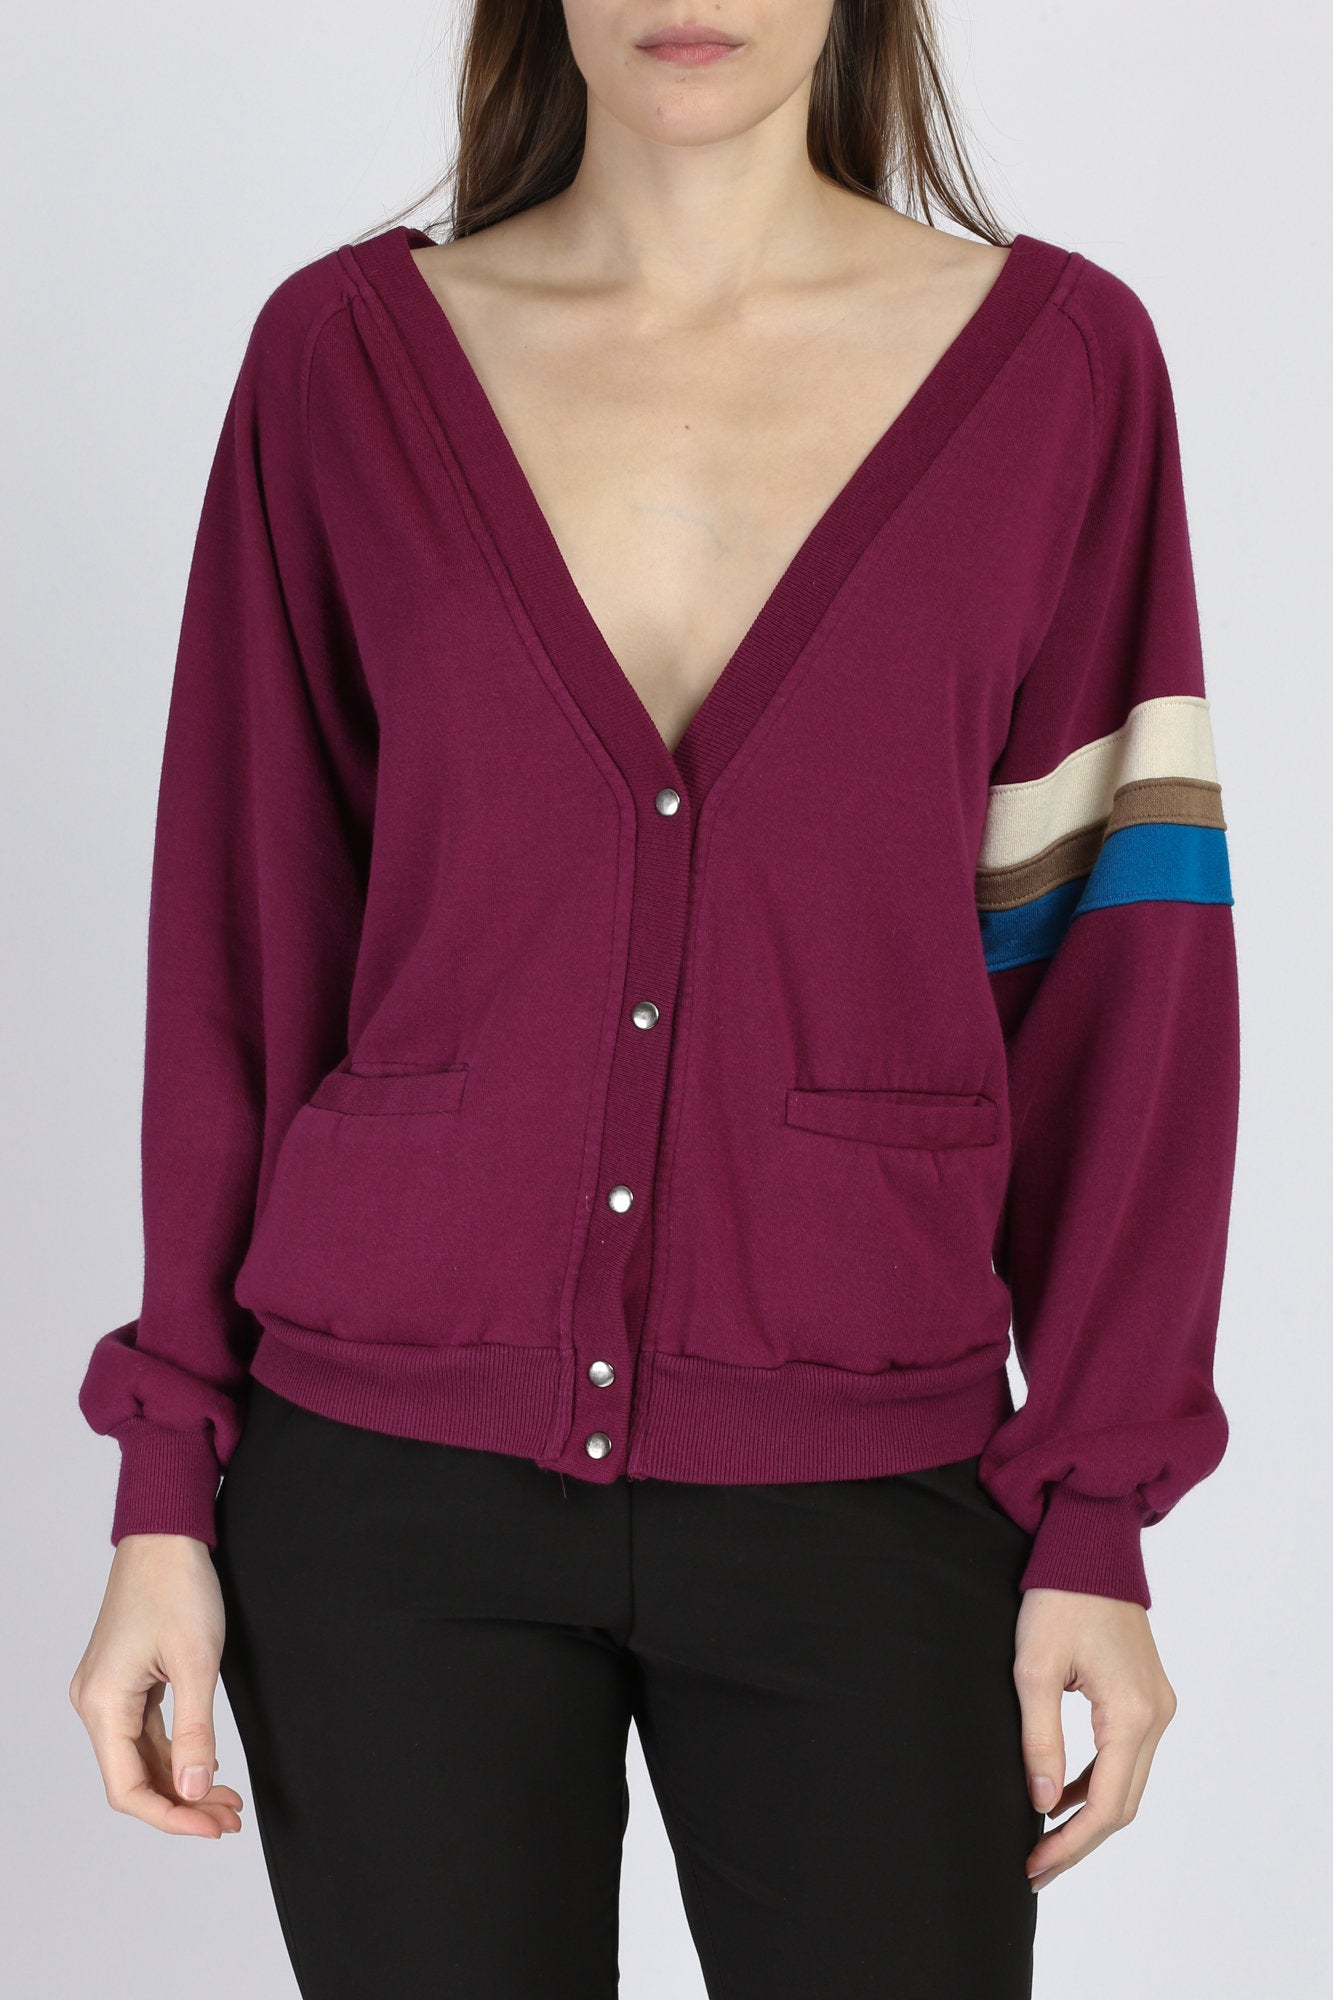 80s V Neck Purple Striped Cardigan Sweatshirt - Large